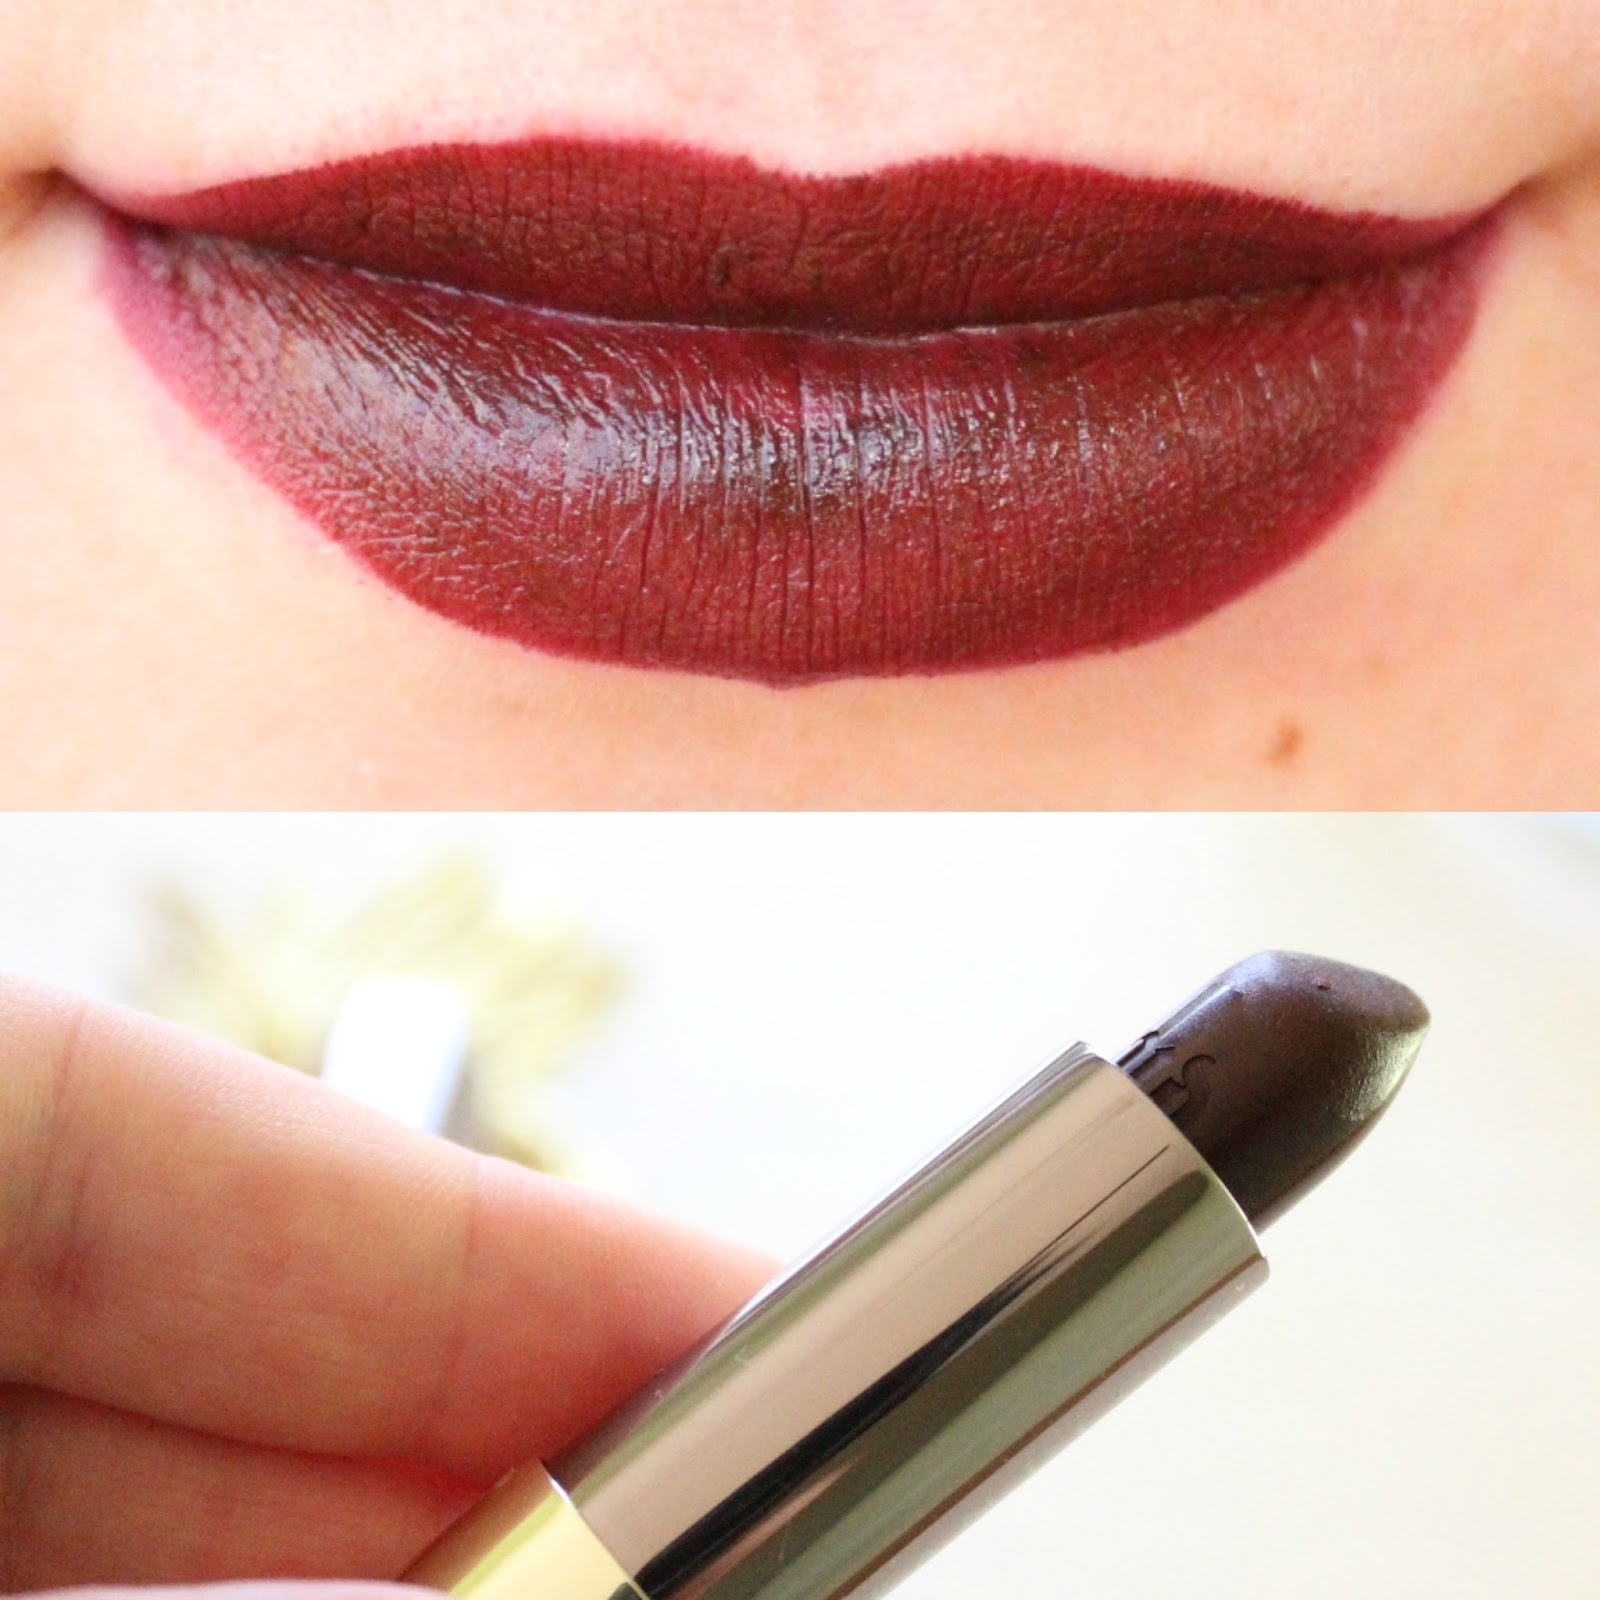 Urban Decay Disturbed Lipstick